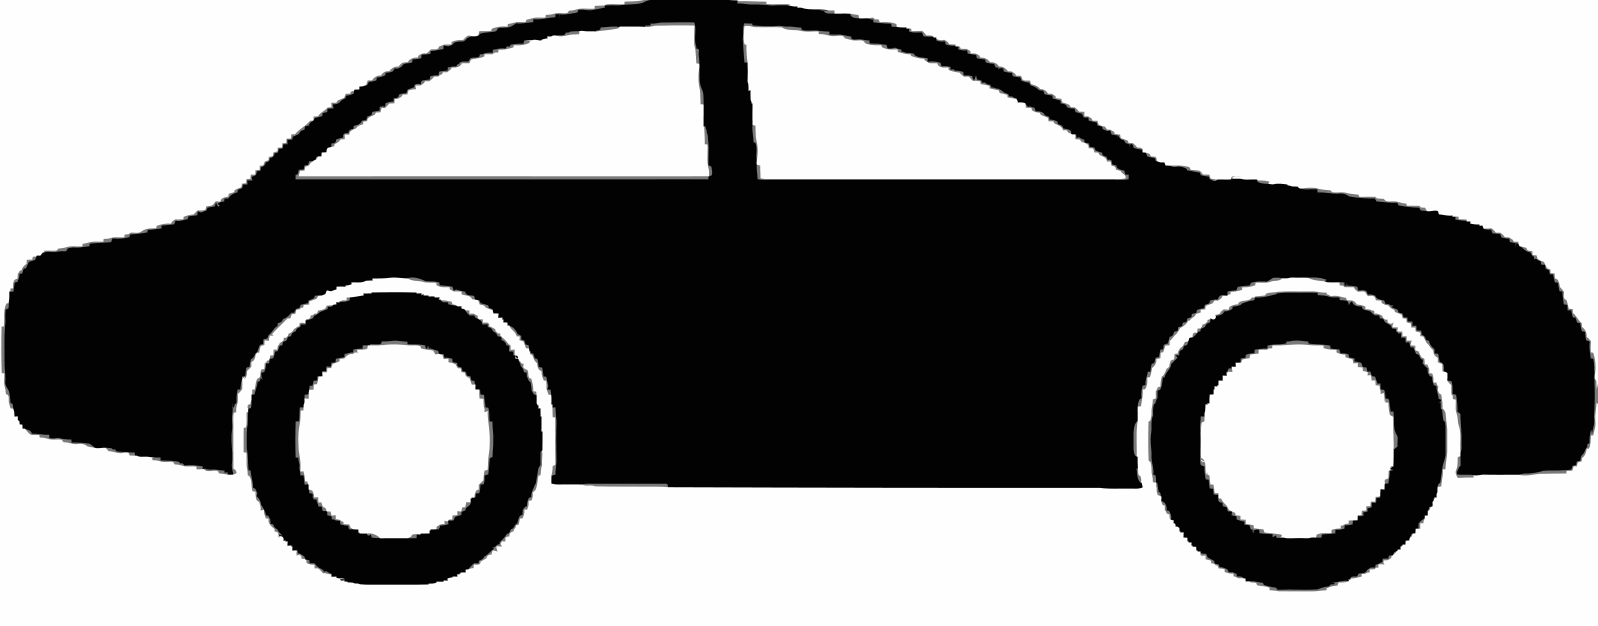 1598x626 Car Black And White Clip Art Images Free Download